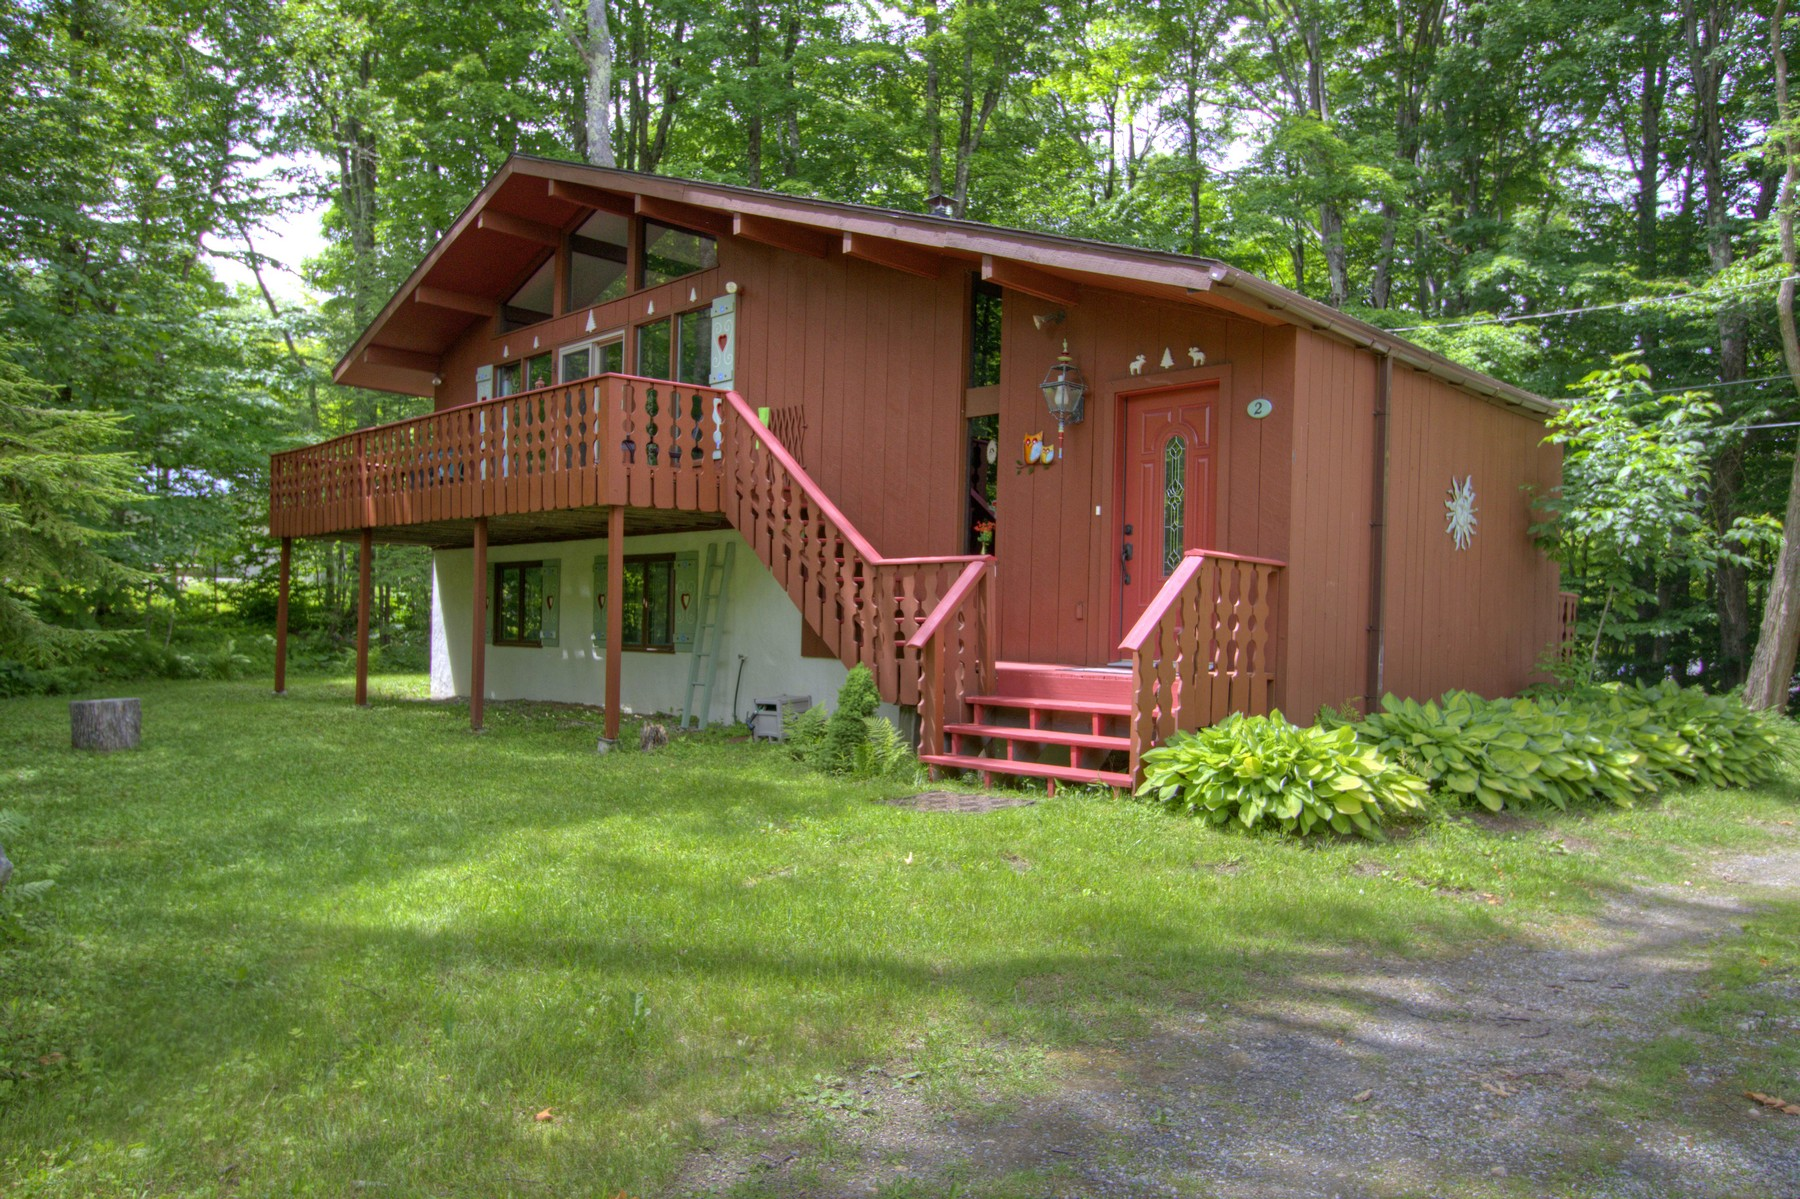 Single Family Home for Sale at 130 North Branch Road, Winhall 130 North Branch Rd Winhall, Vermont, 05340 United States